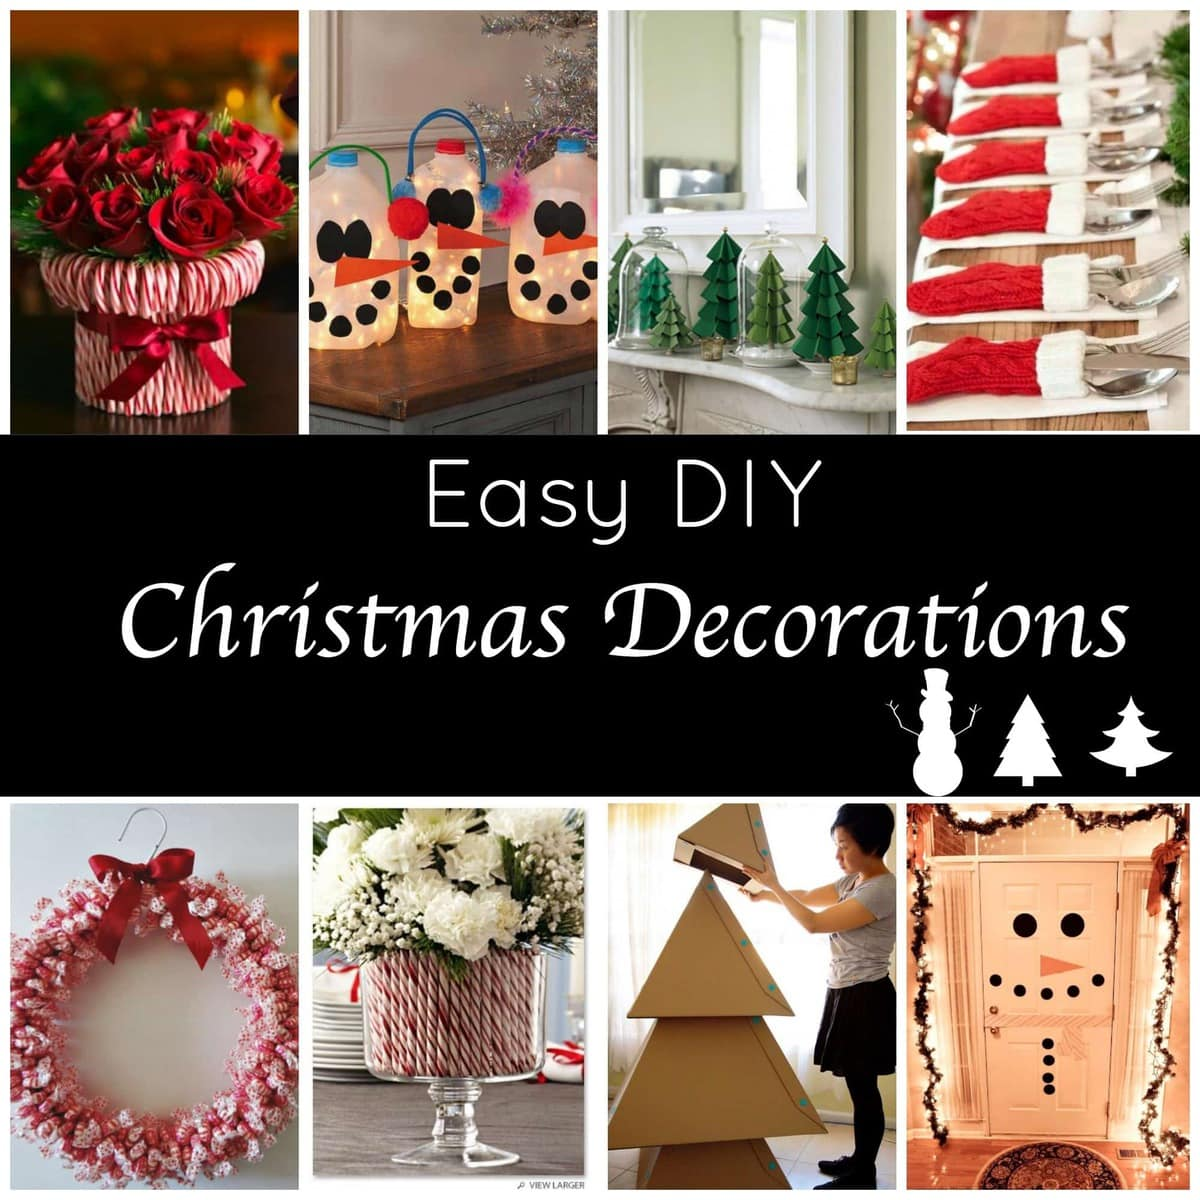 Cute and easy diy holiday decorations for a festive home for Diy christmas decorations for your home